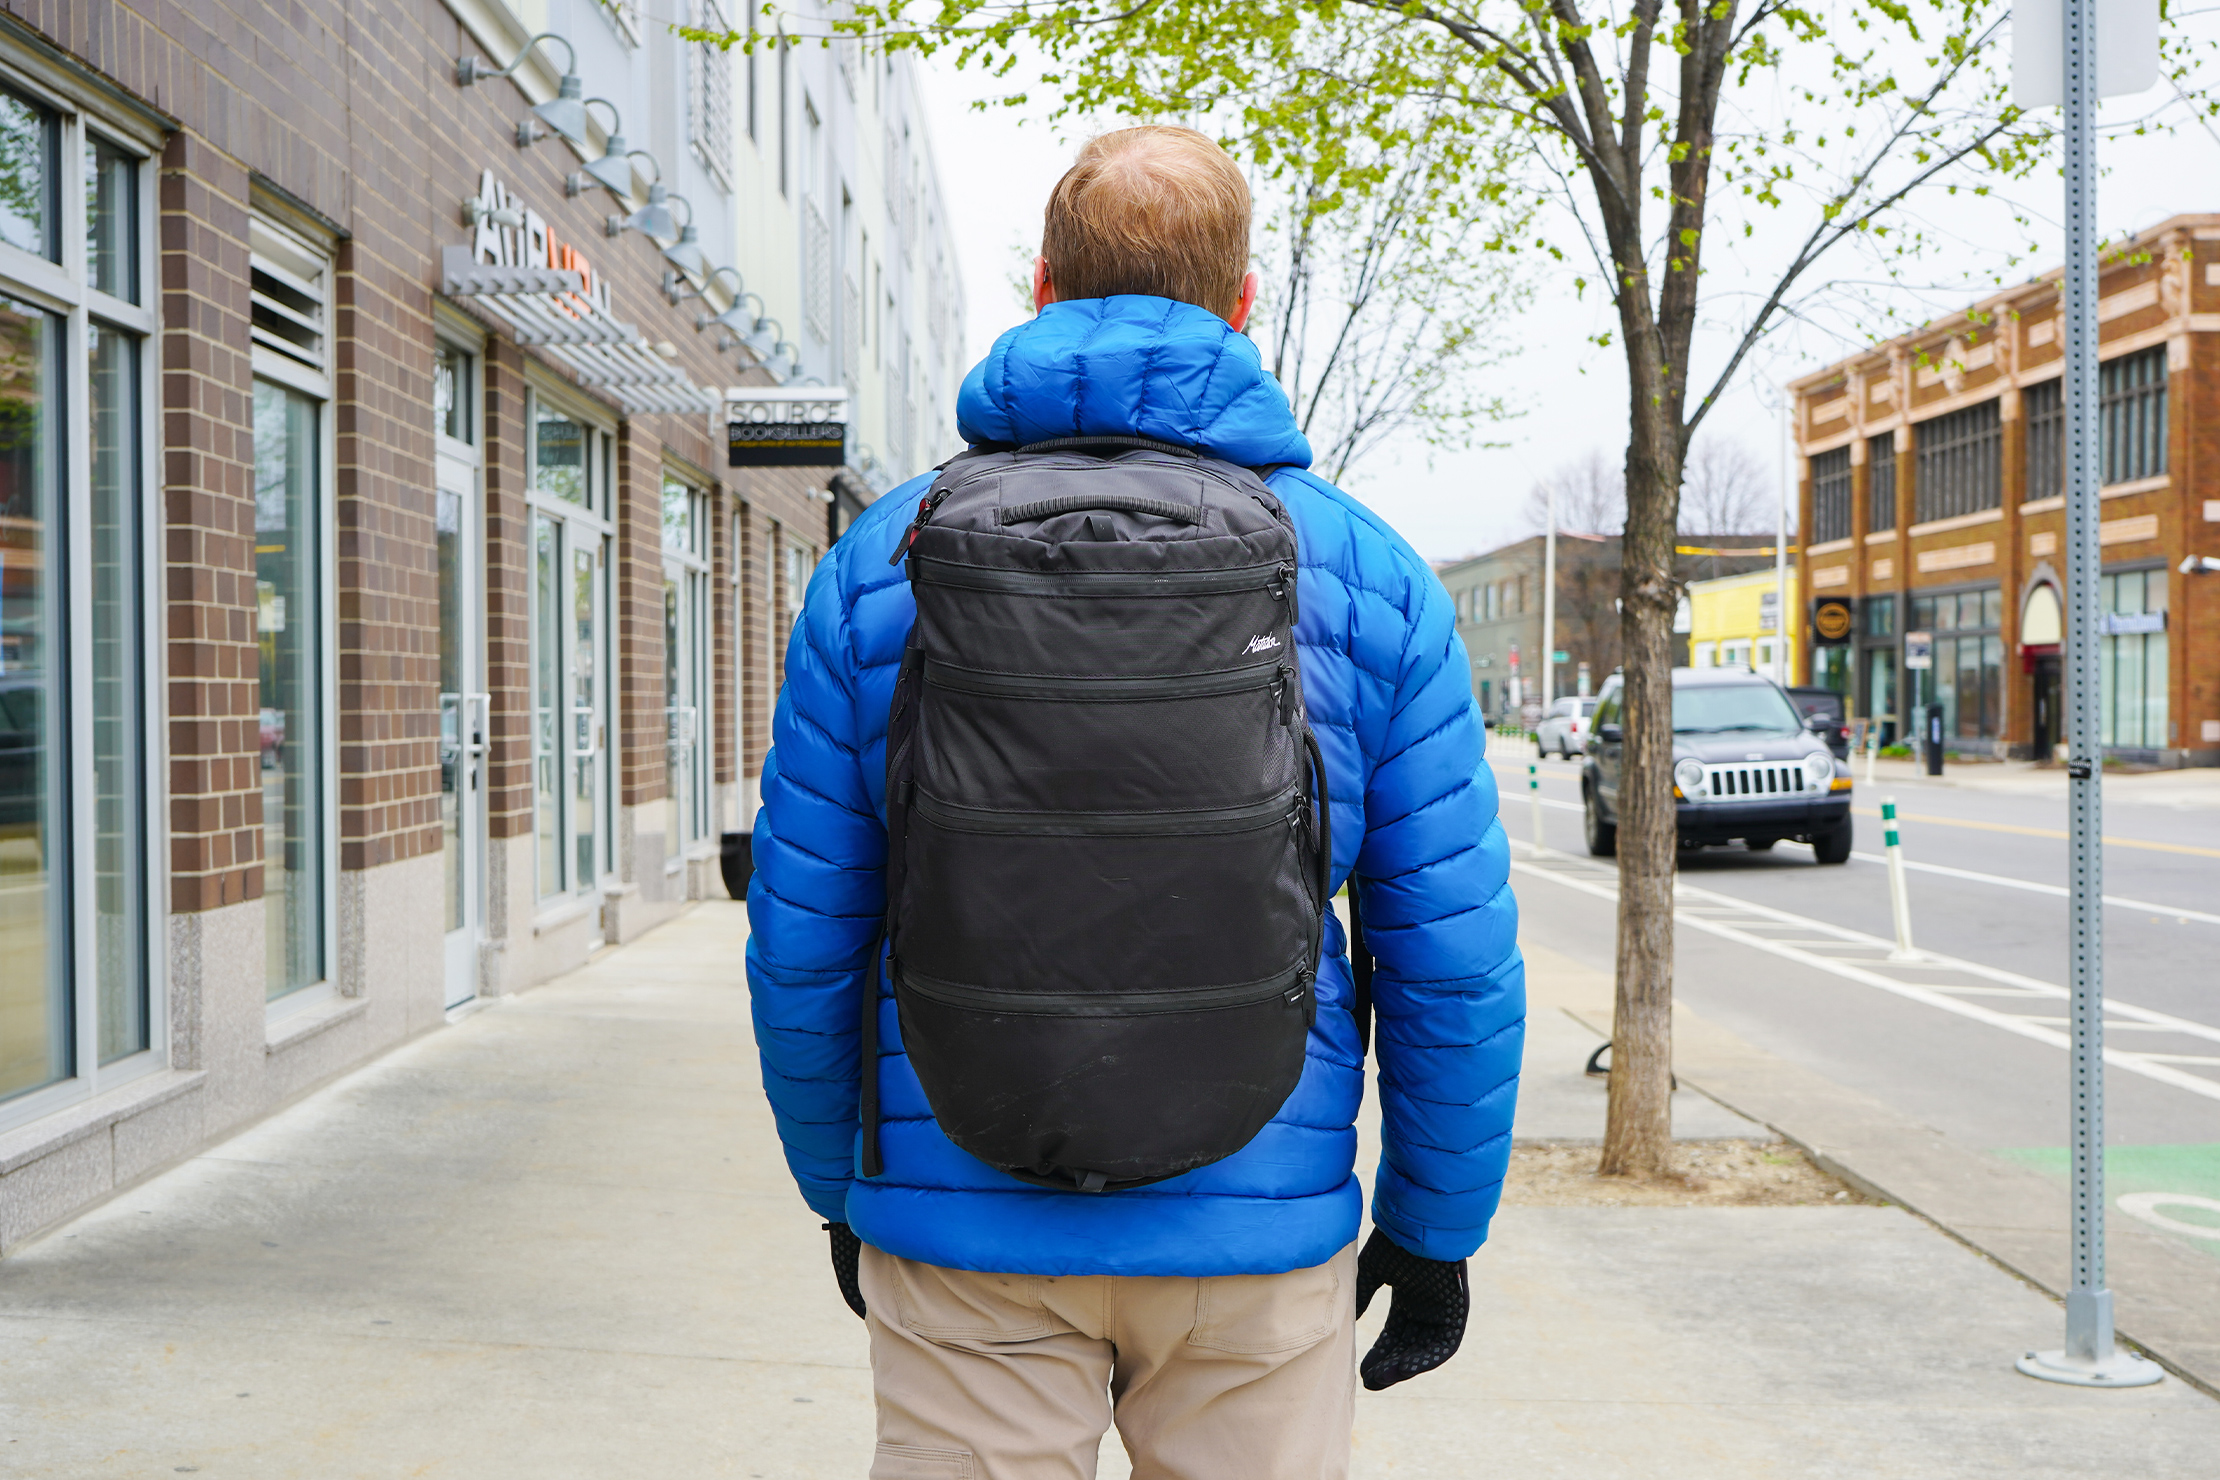 Matador SEG30 Backpack | Out of town trip with the backpack